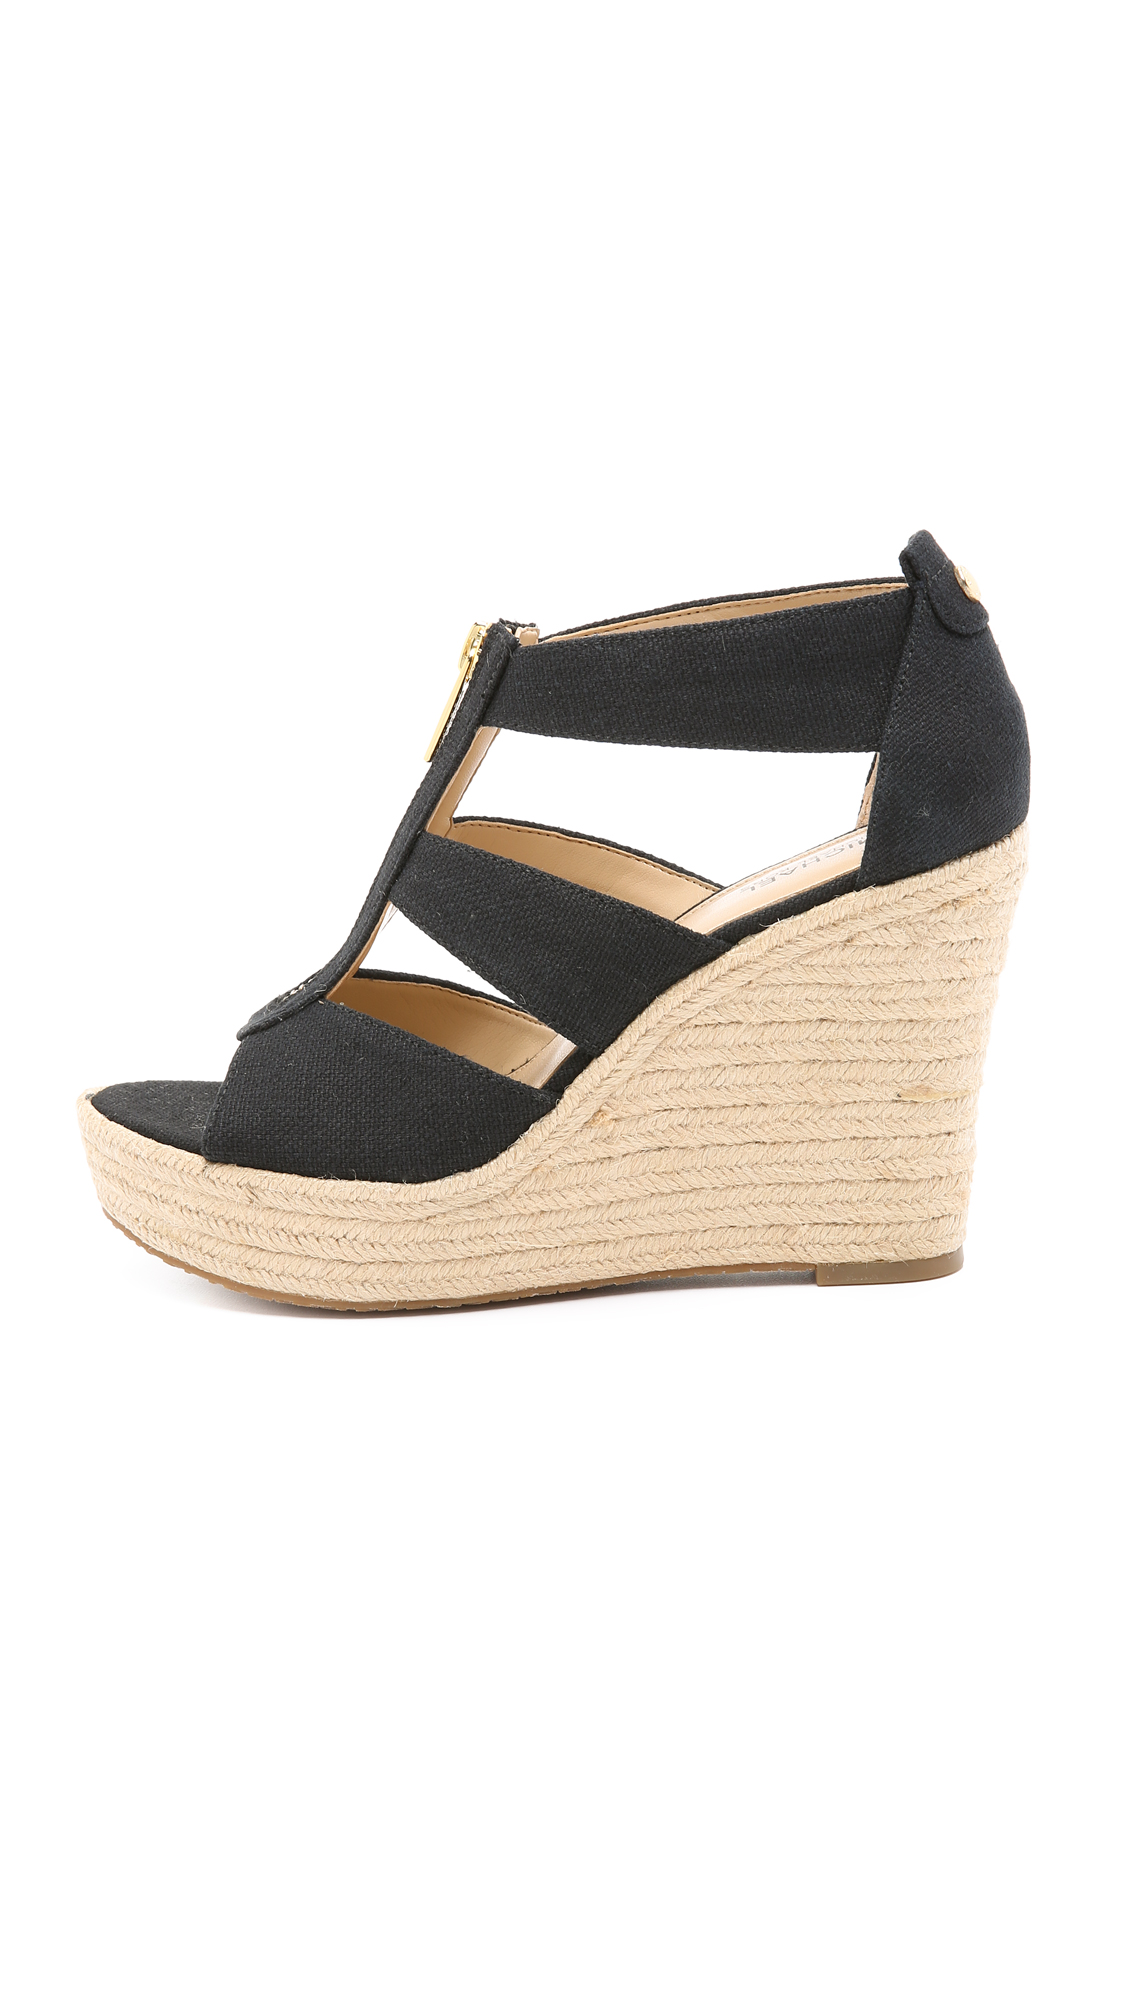 51499191cea MICHAEL Michael Kors Damita Wedge Sandals